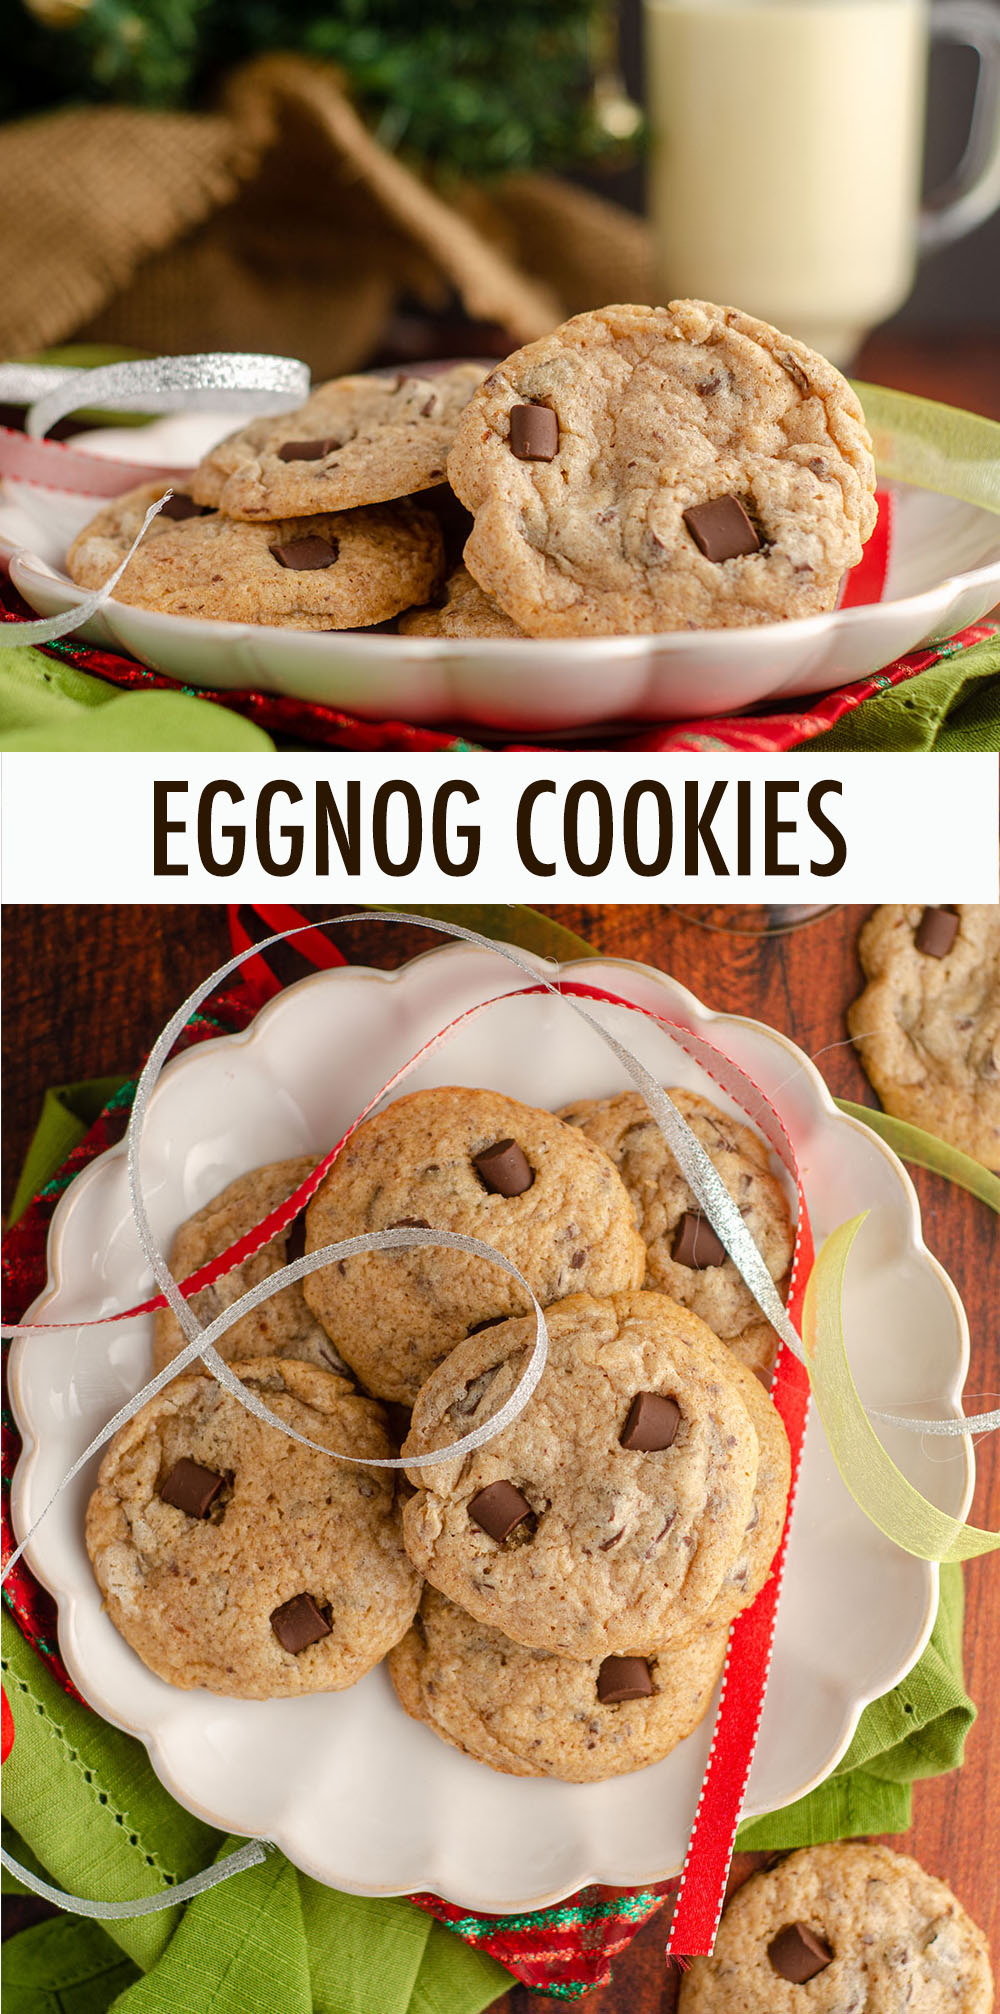 Tender cookies with crunchy edges spiced with cinnamon, nutmeg, and actual eggnog. Chocolate chunks add the perfect complement to all the spice!